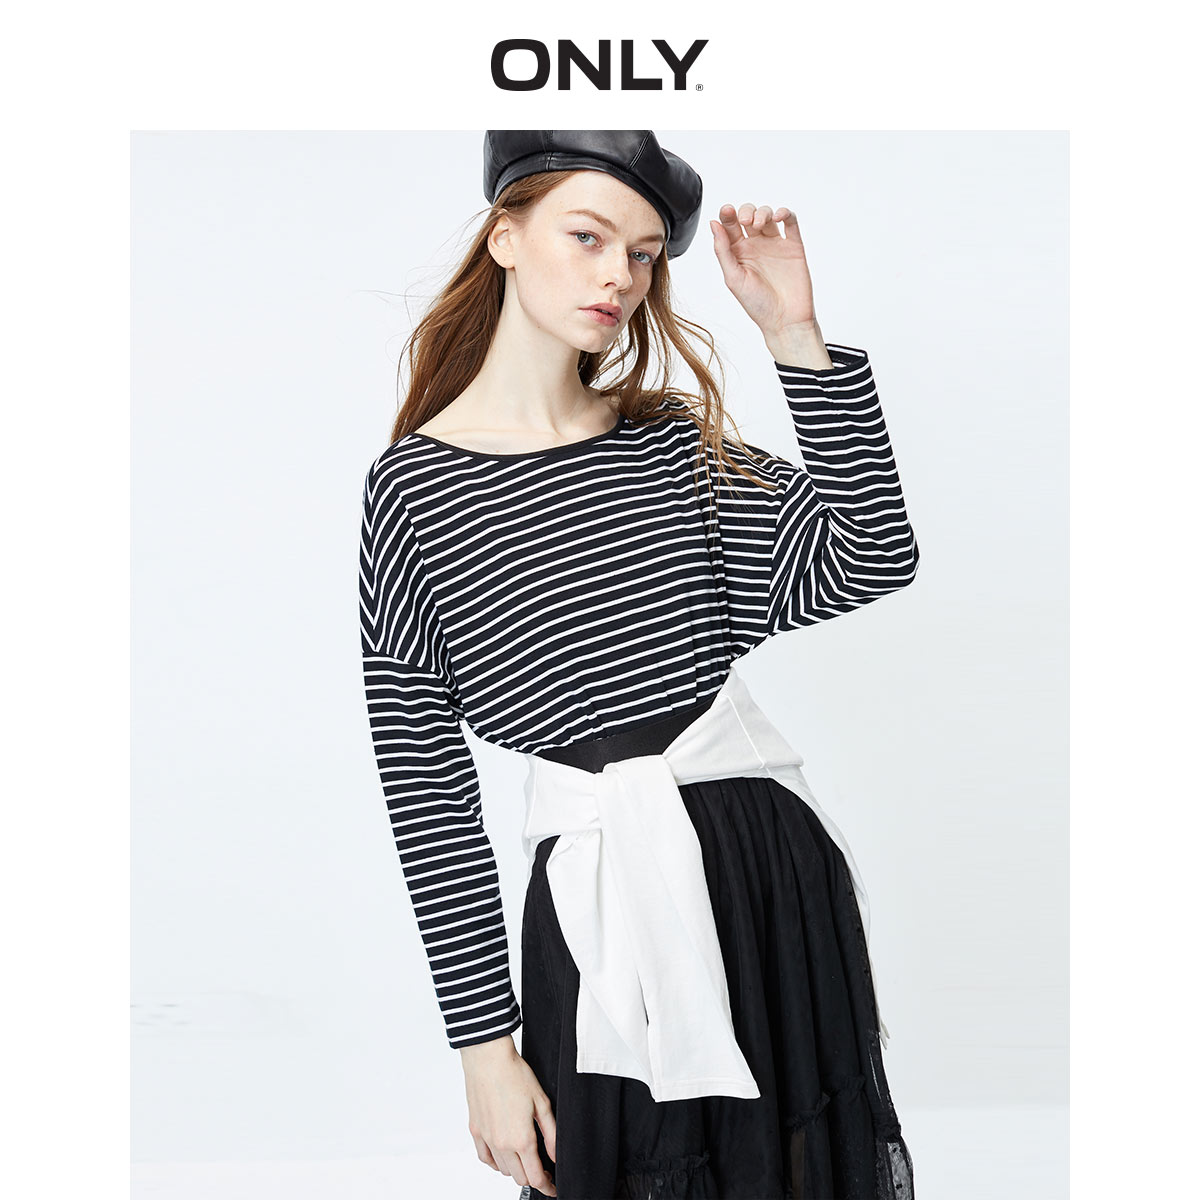 ONLY Women's Loose Fit Round Neckline Cross-over Lace-up Long-sleeved T-shirt | 120102513